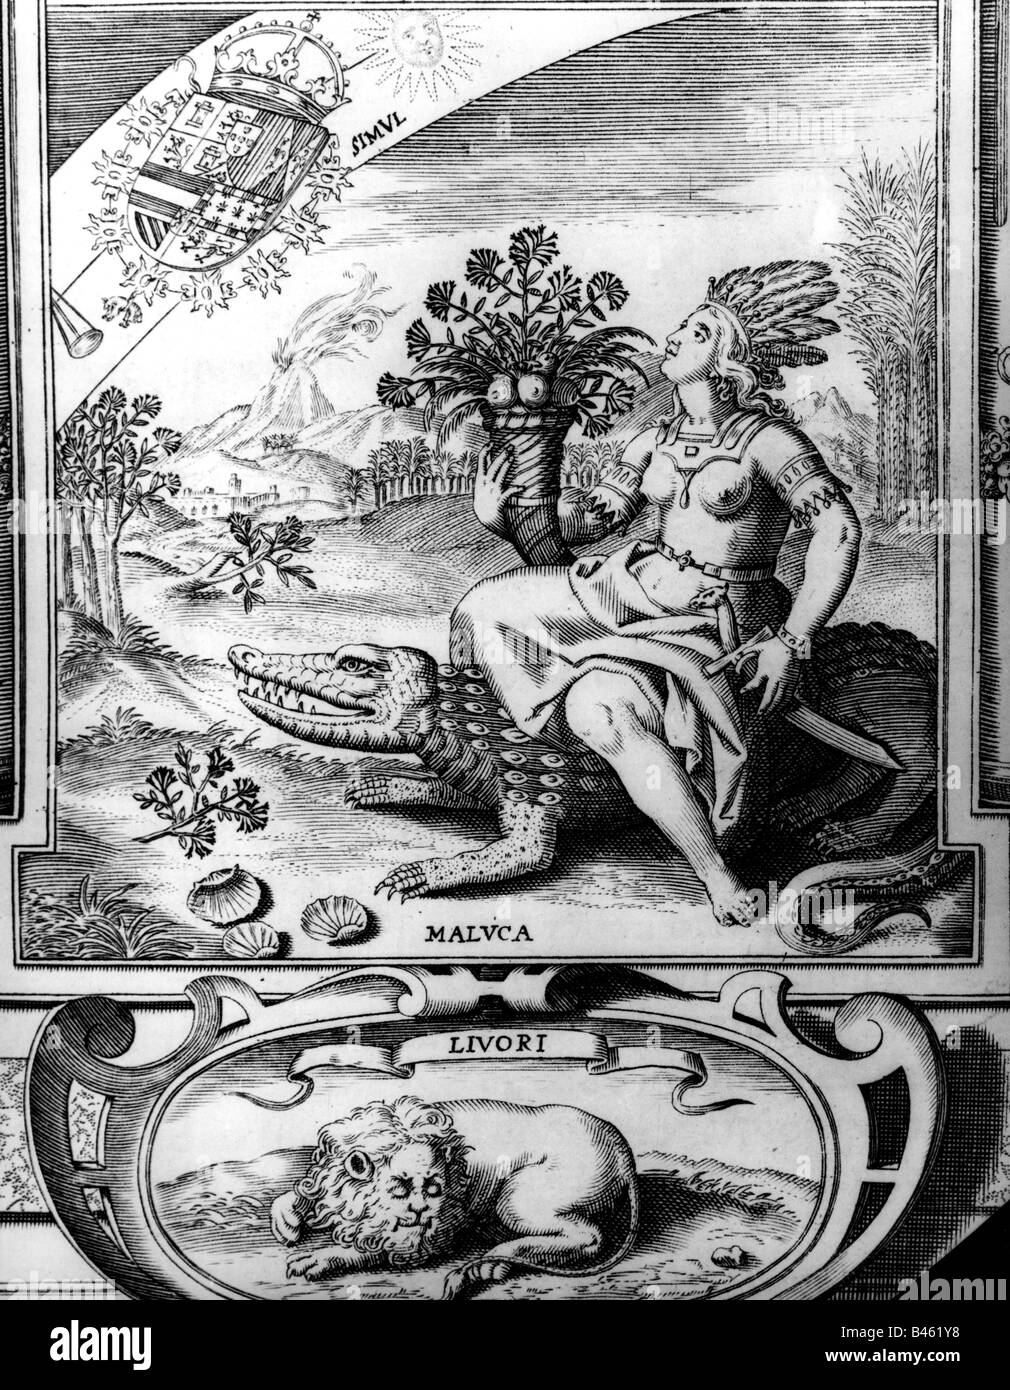 geography / travel, Malaku Islands, allegory on the riches of the islands, Spansh copper engraving, 1609, Additional - Stock Image